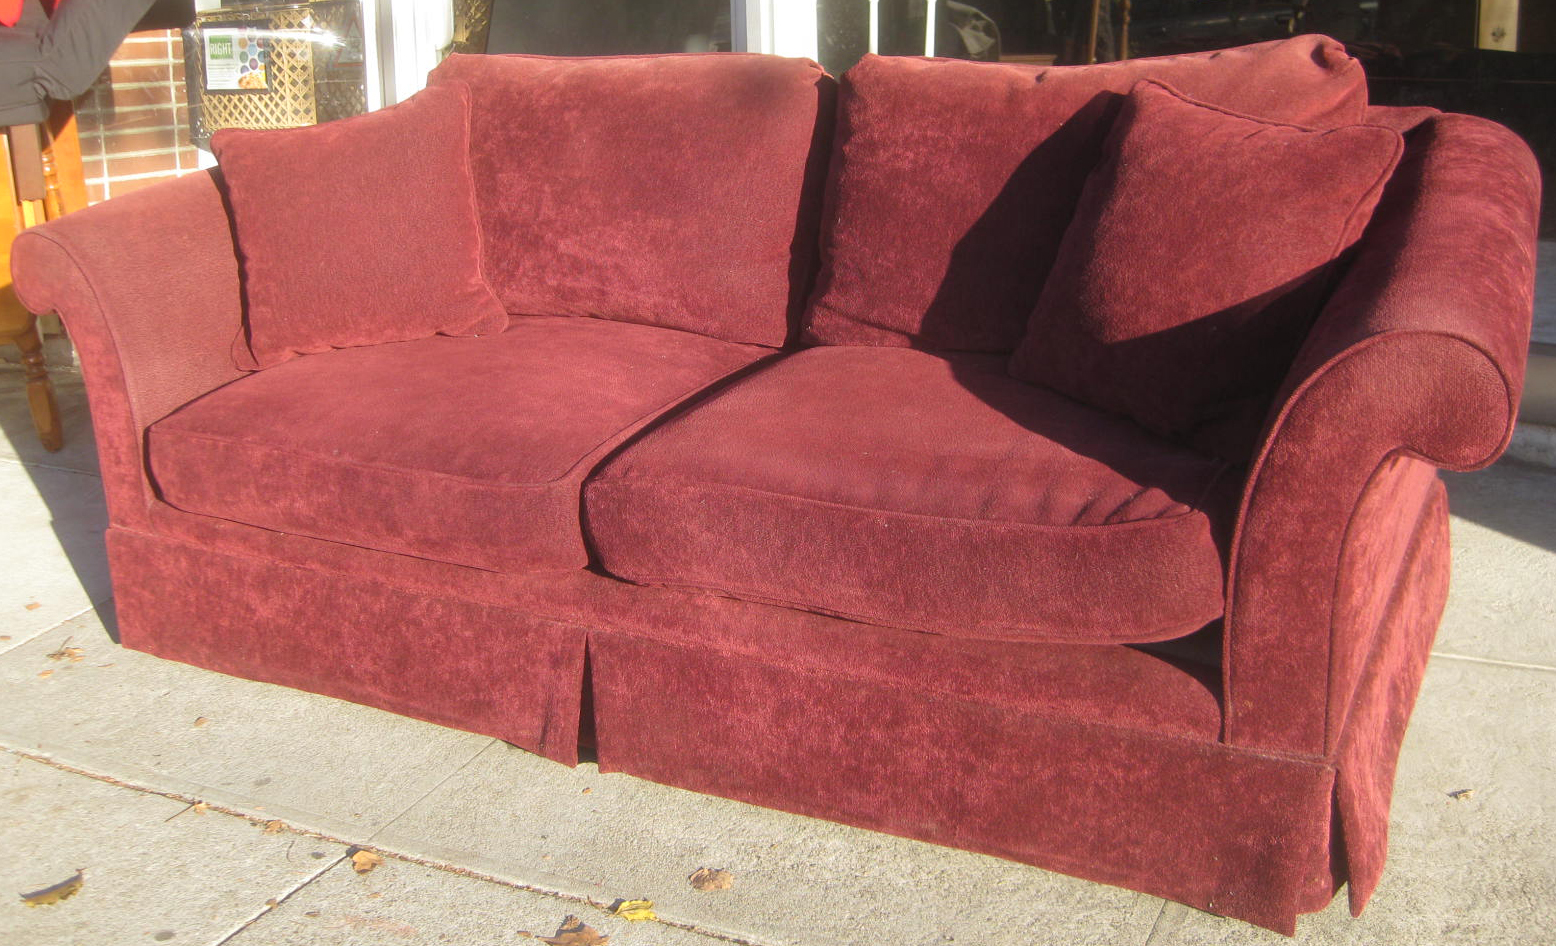 UHURU FURNITURE & COLLECTIBLES SOLD Burgundy Sofa $50